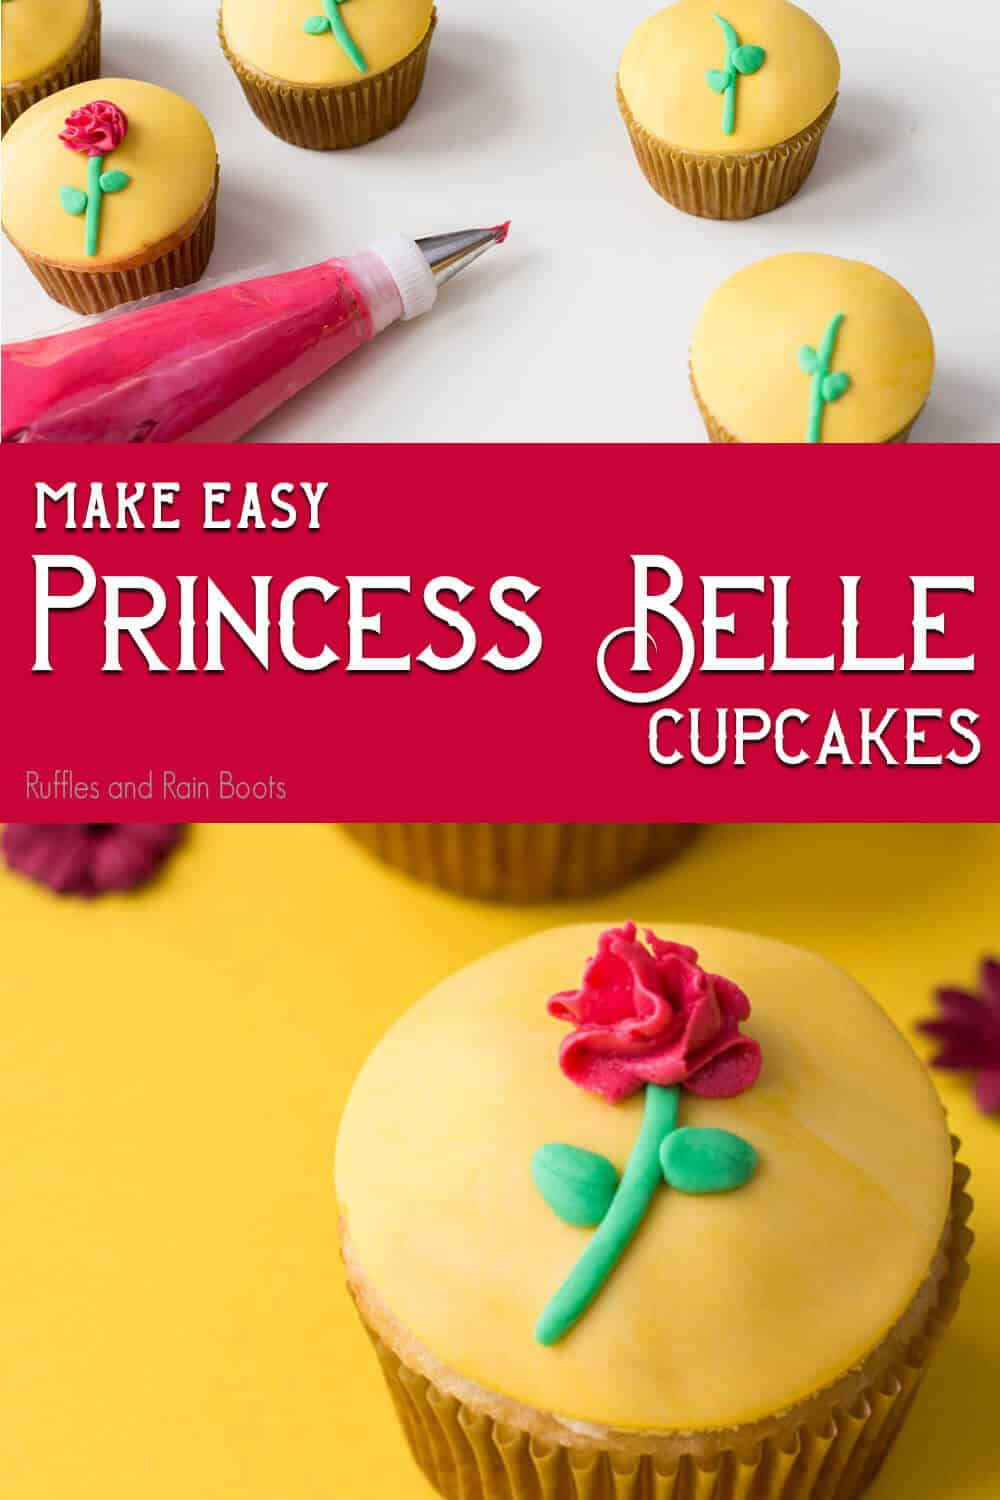 photo collage of princess belle cupcakes with text which reads make easy princess belle cupcakes